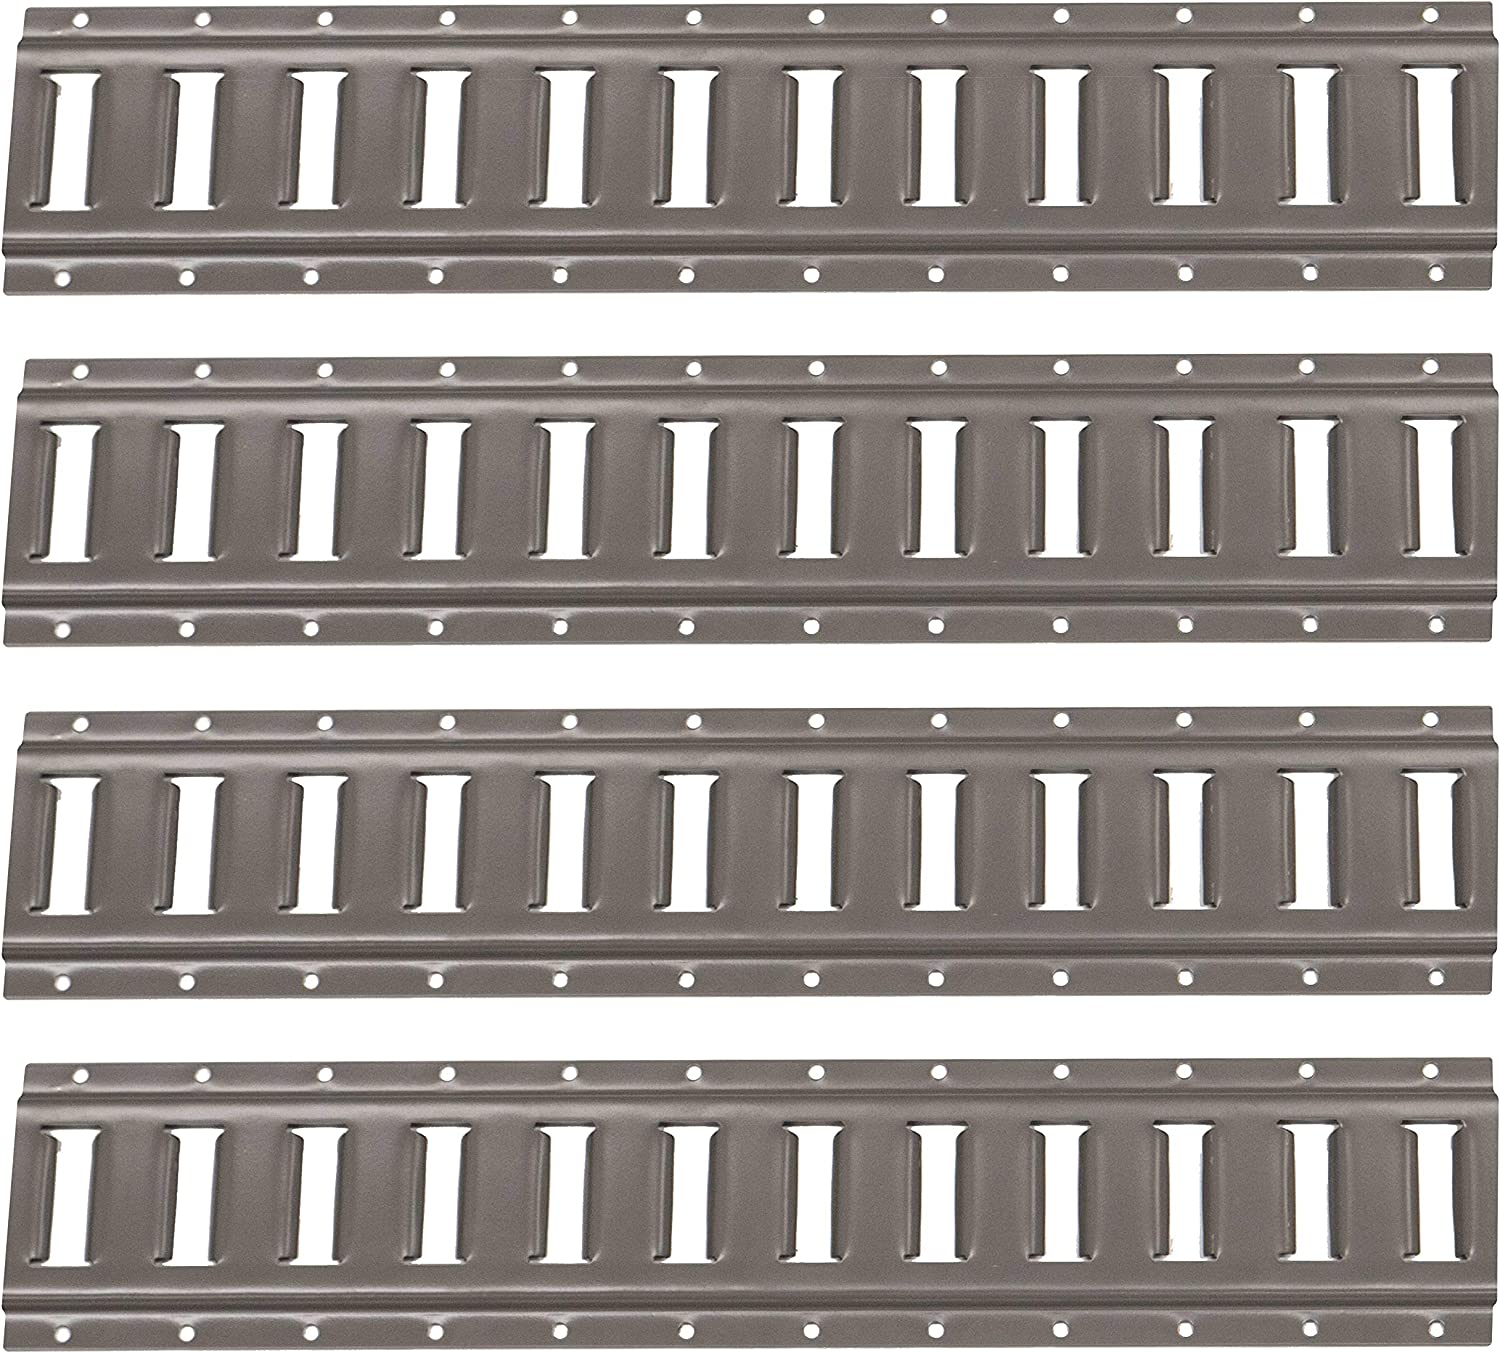 12 Gauge Steel 2 Foot Length E Track Rail Galvanized Finish 4 Pack Easily Secure Cargo in an Enclosed Van Trailer US Cargo Control Horizontal E Track